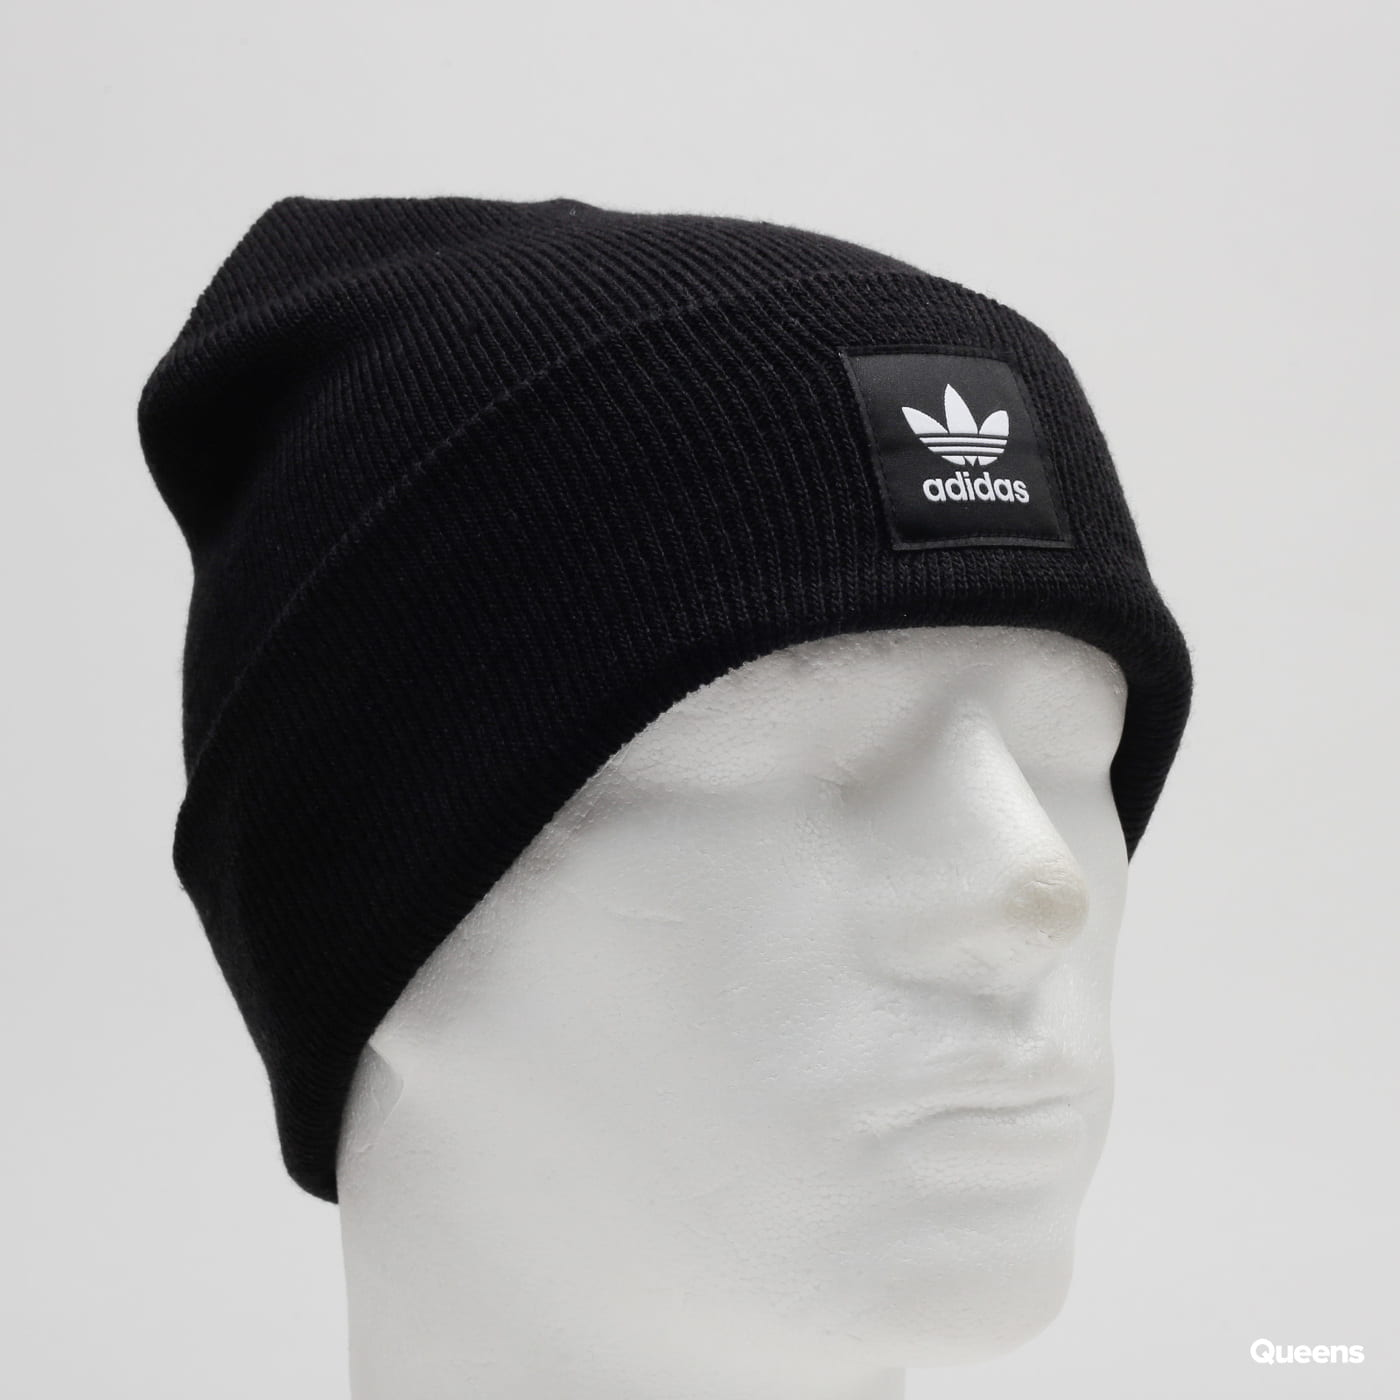 matriz recluta Retorcido  Hat adidas Originals AC Cuff Knit black (ED8712) – Queens 💚